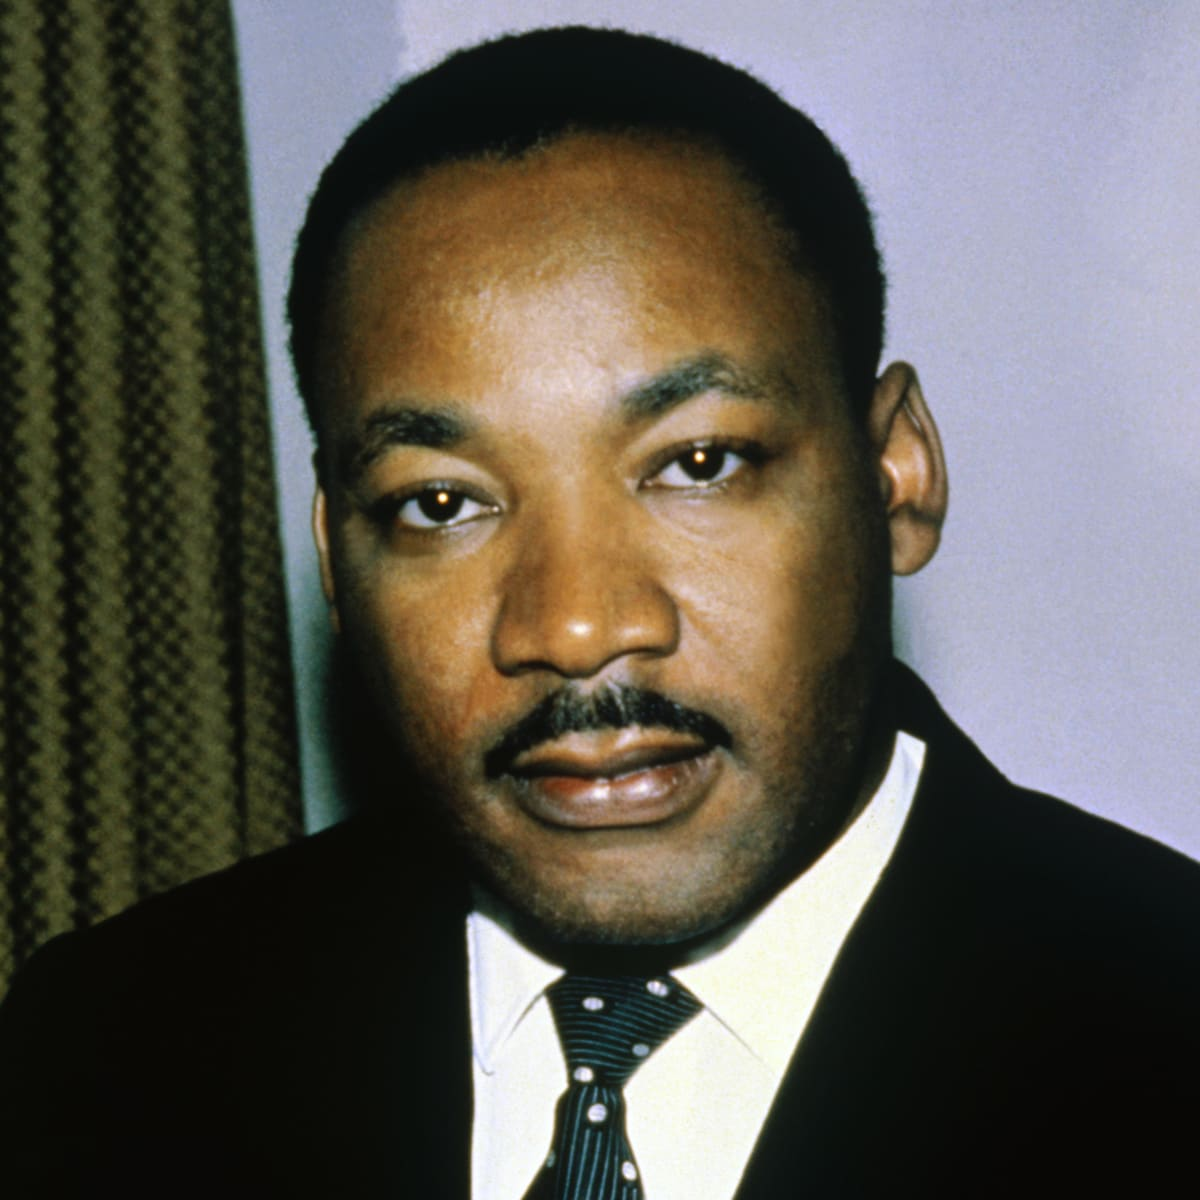 Martin Luther King III pen touching notes on 53rd anniversary of father's death